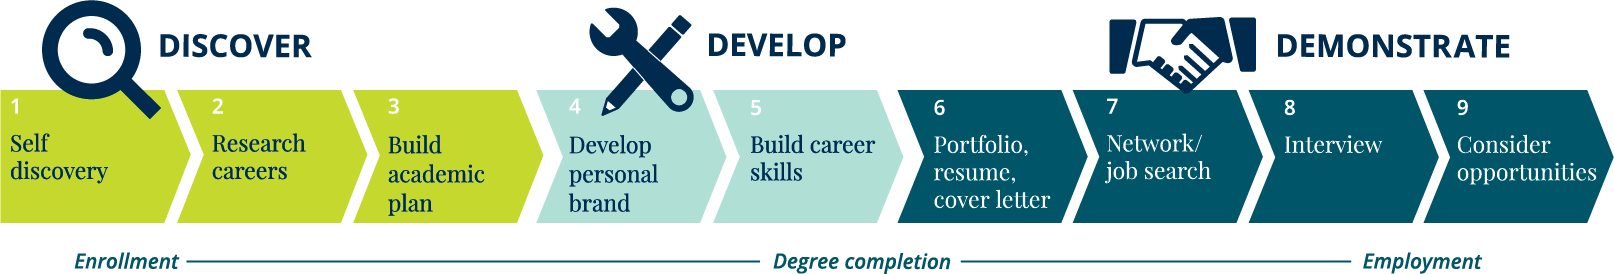 Graphic showing linear progression of nine career success pathway milestones: Discover (1-3), Develop (4-5), Demonstrate (6-9)